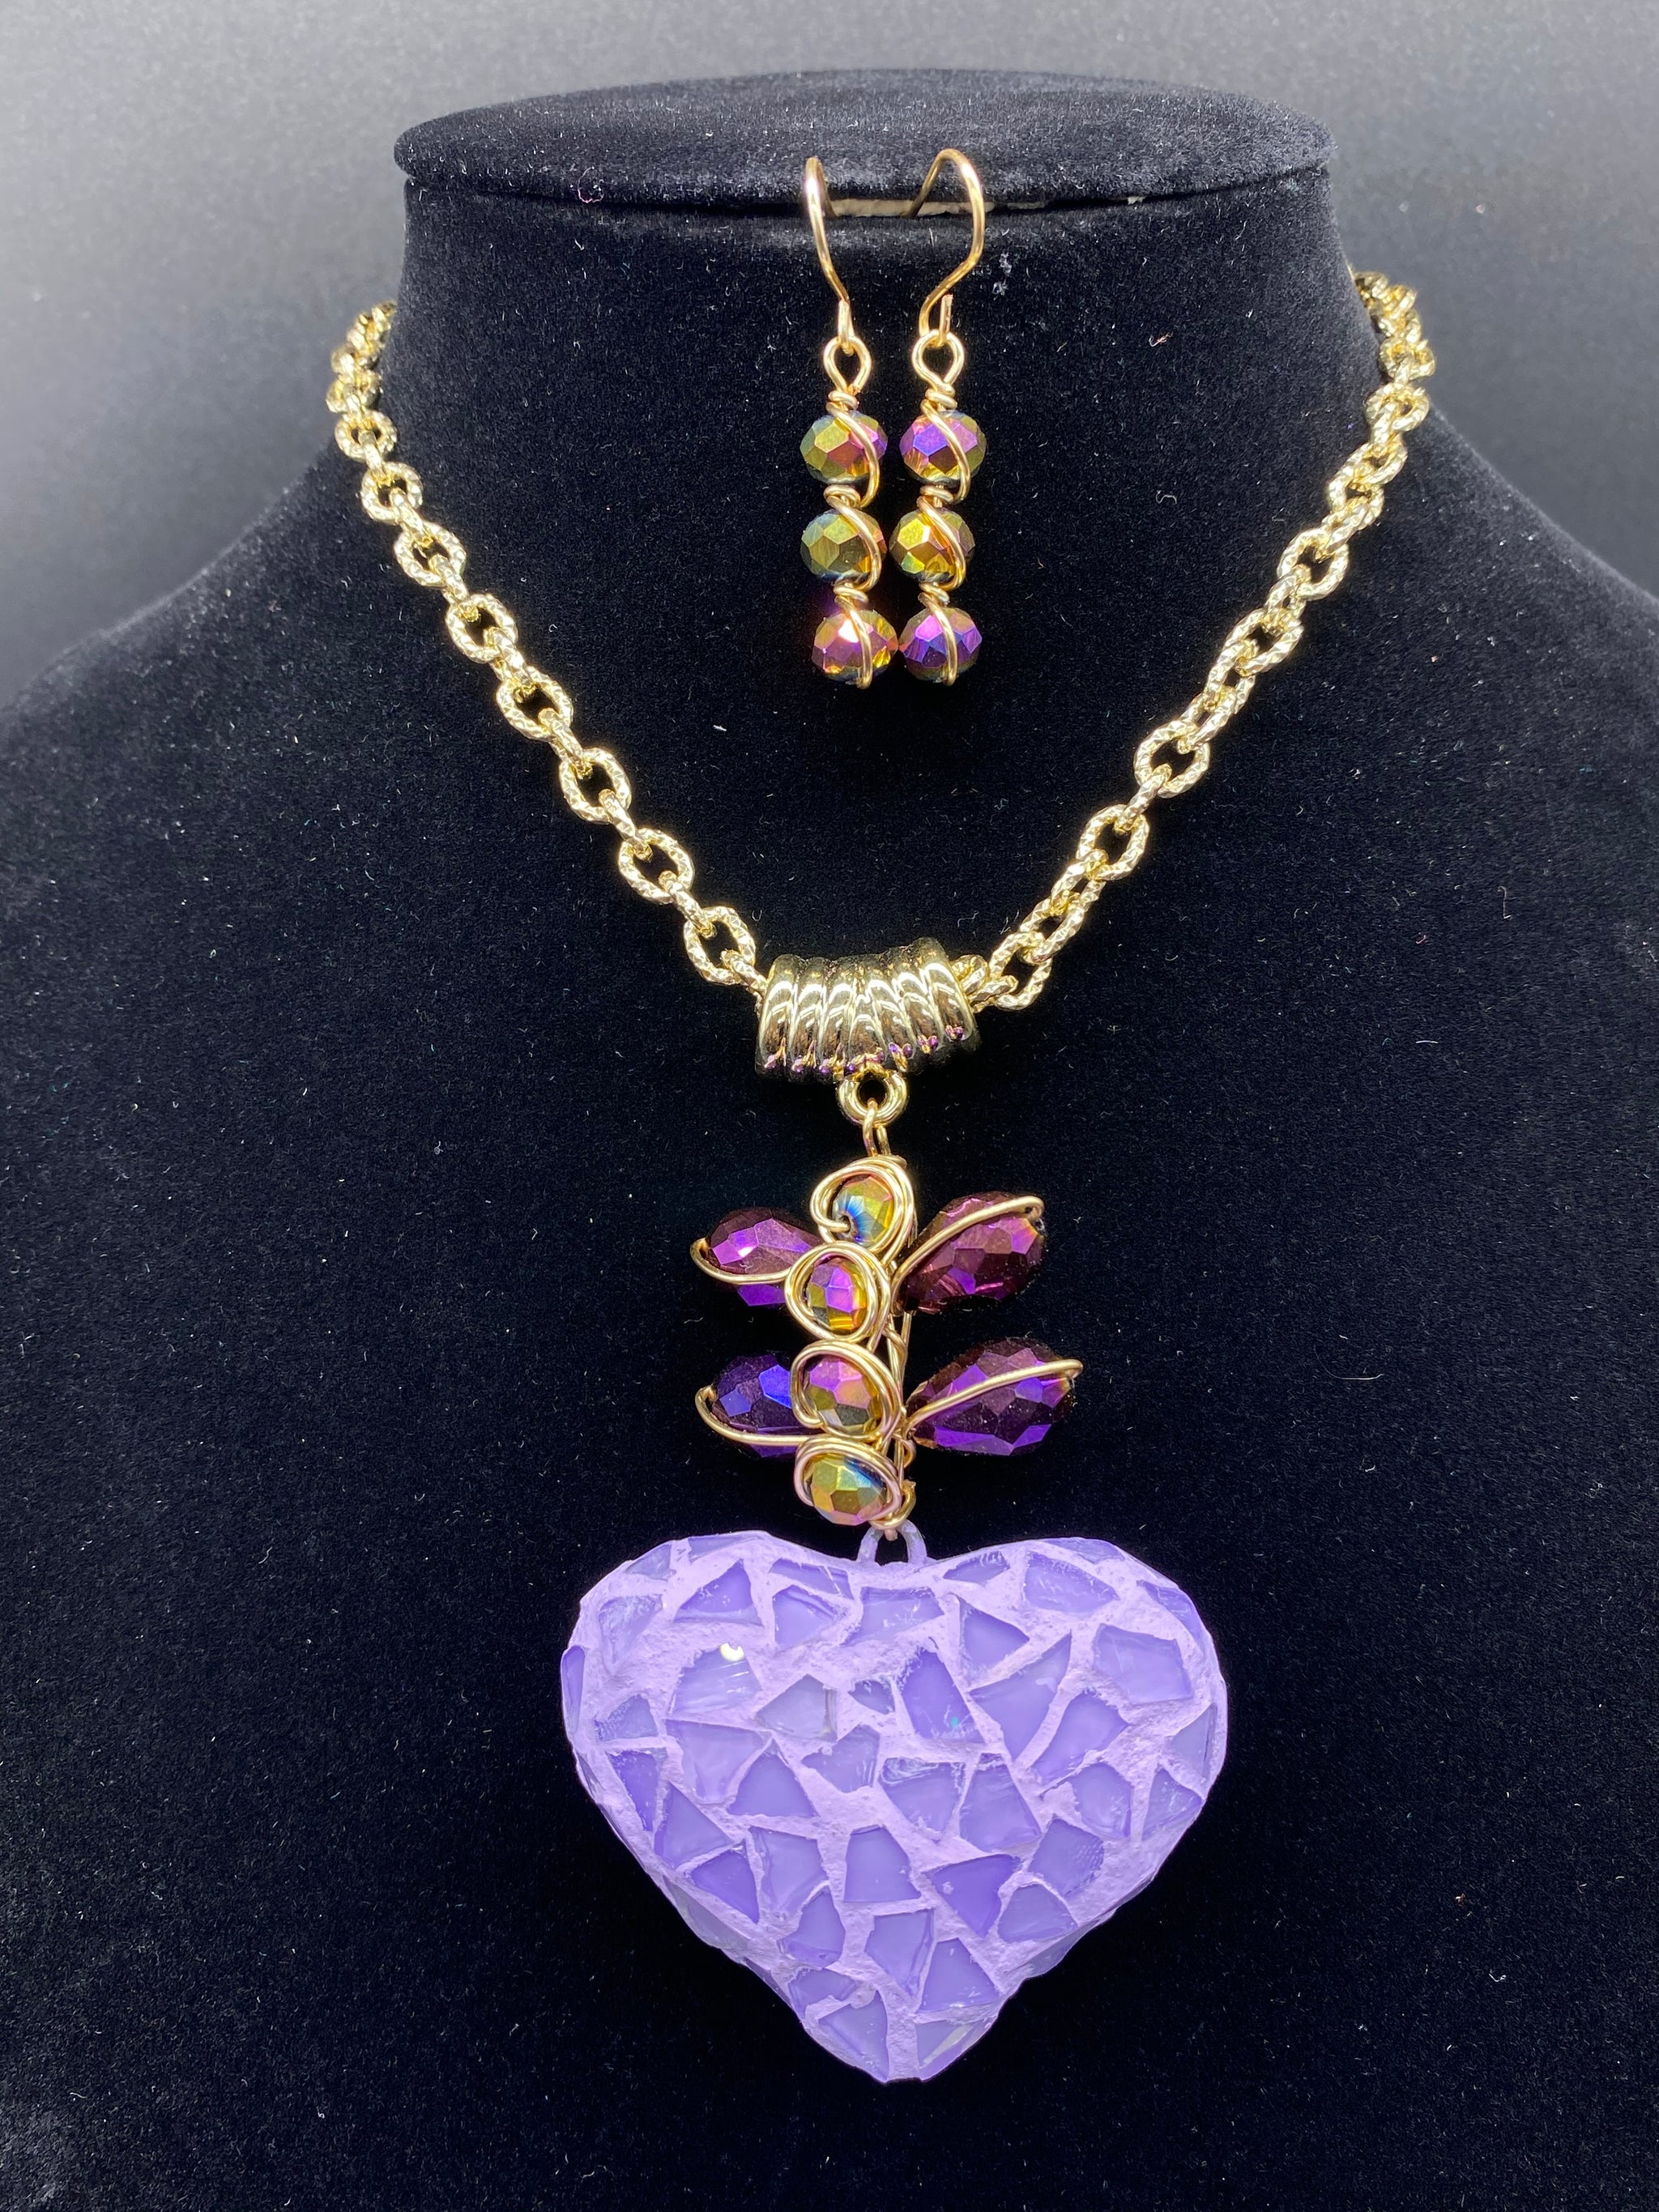 Spectacular Mexican Artisan Set of Necklace and earrings - Corazón Clothing